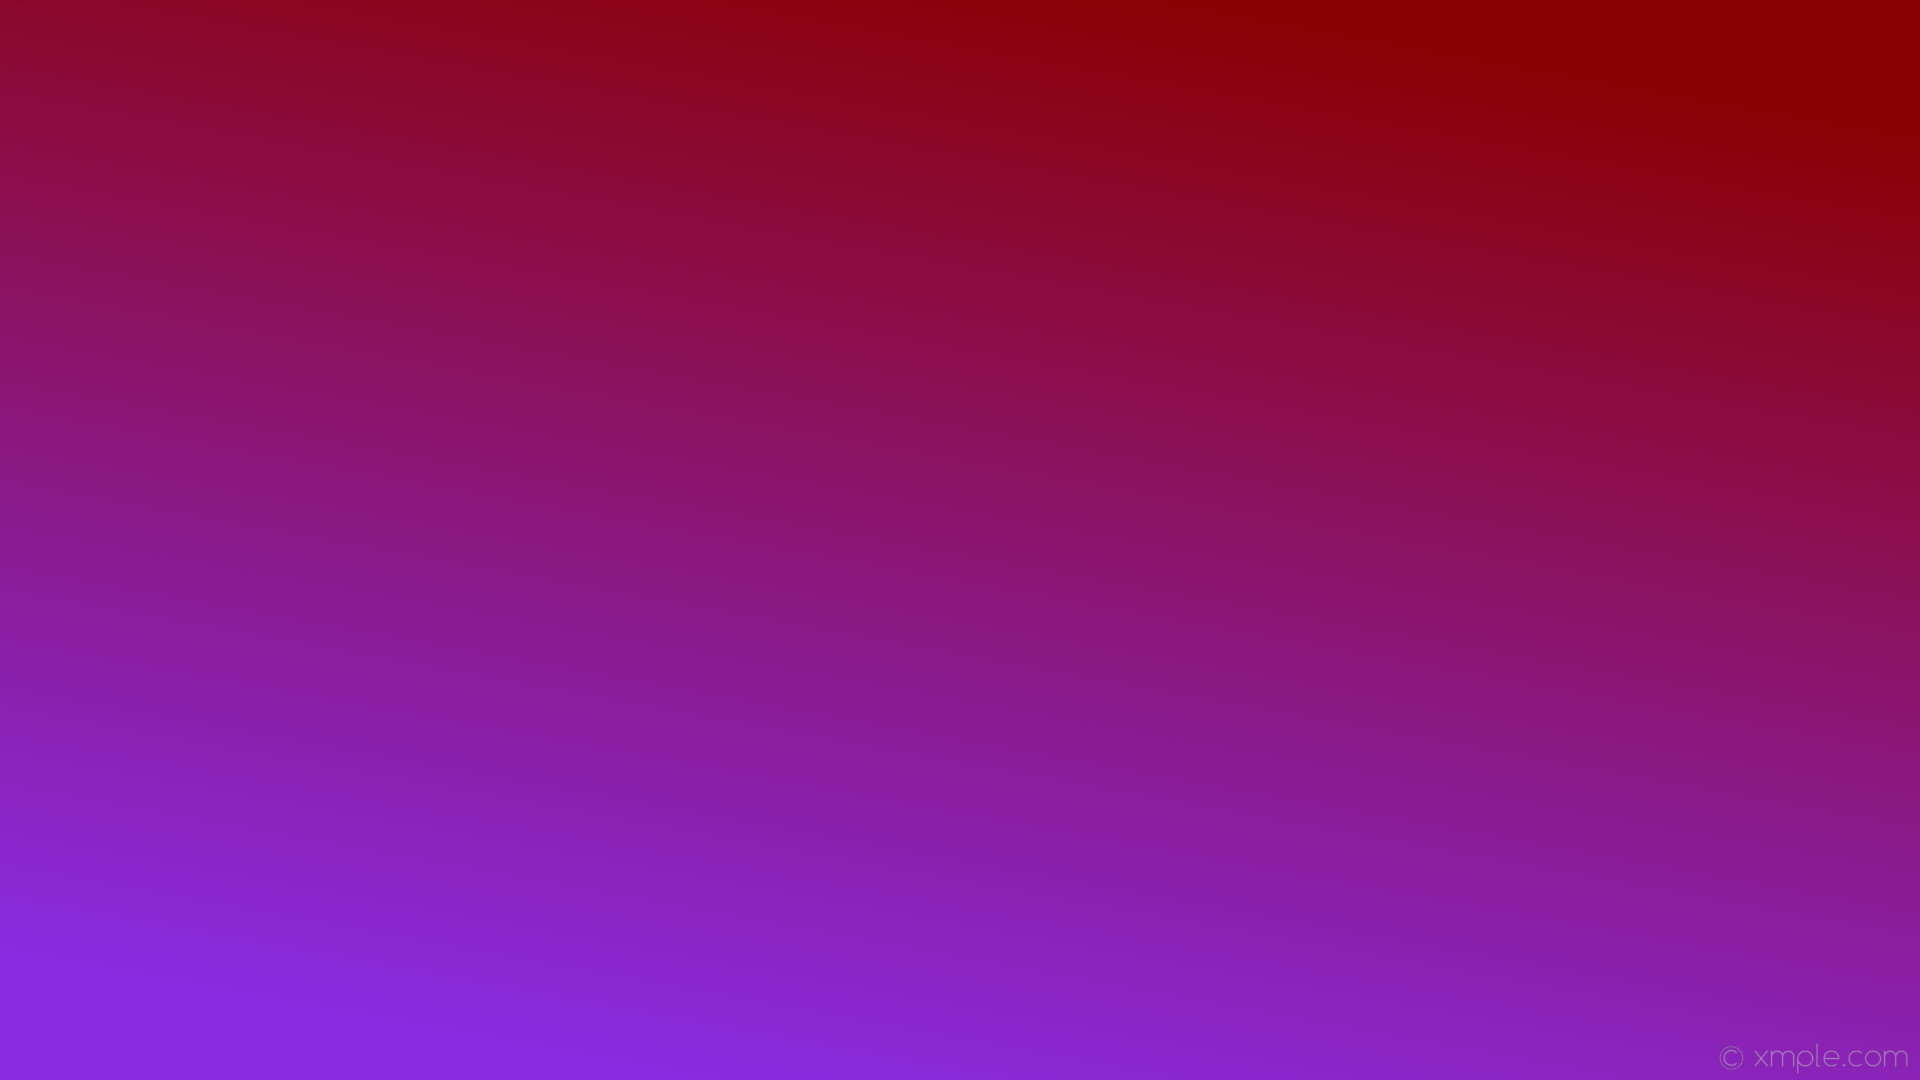 wallpaper gradient linear red purple blue violet dark red #8a2be2 #8b0000  240°